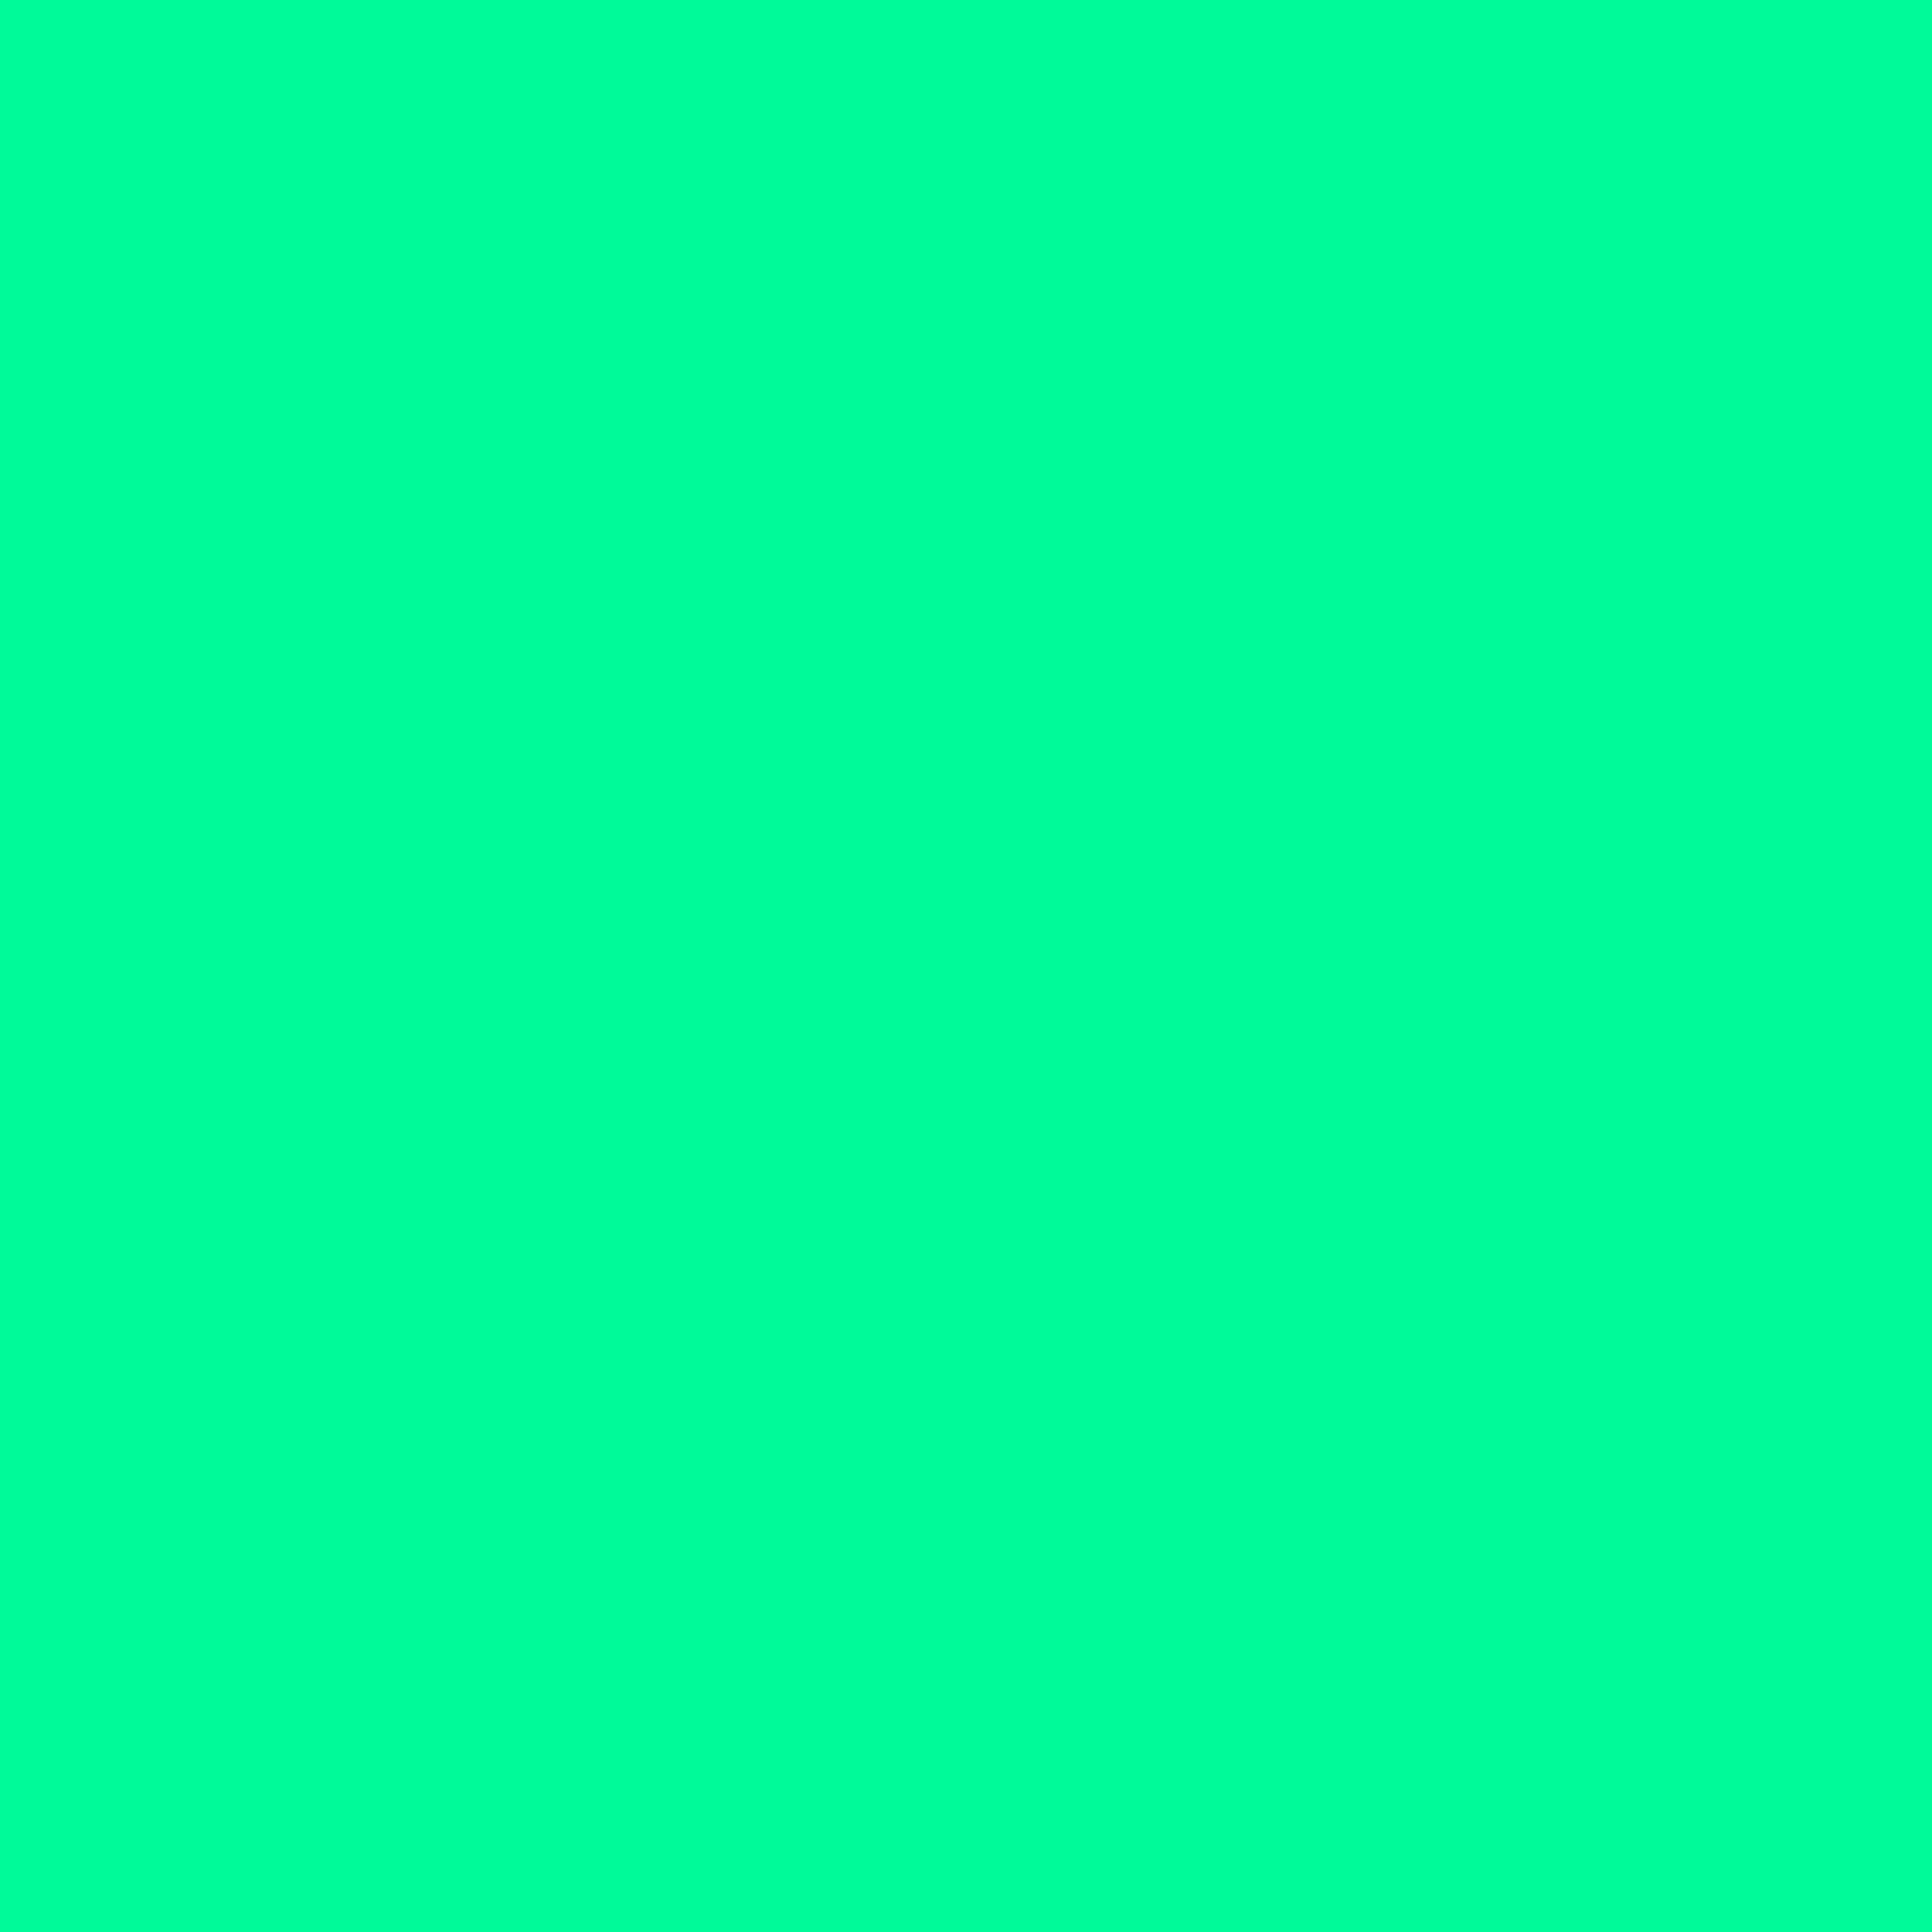 2732x2732 Medium Spring Green Solid Color Background